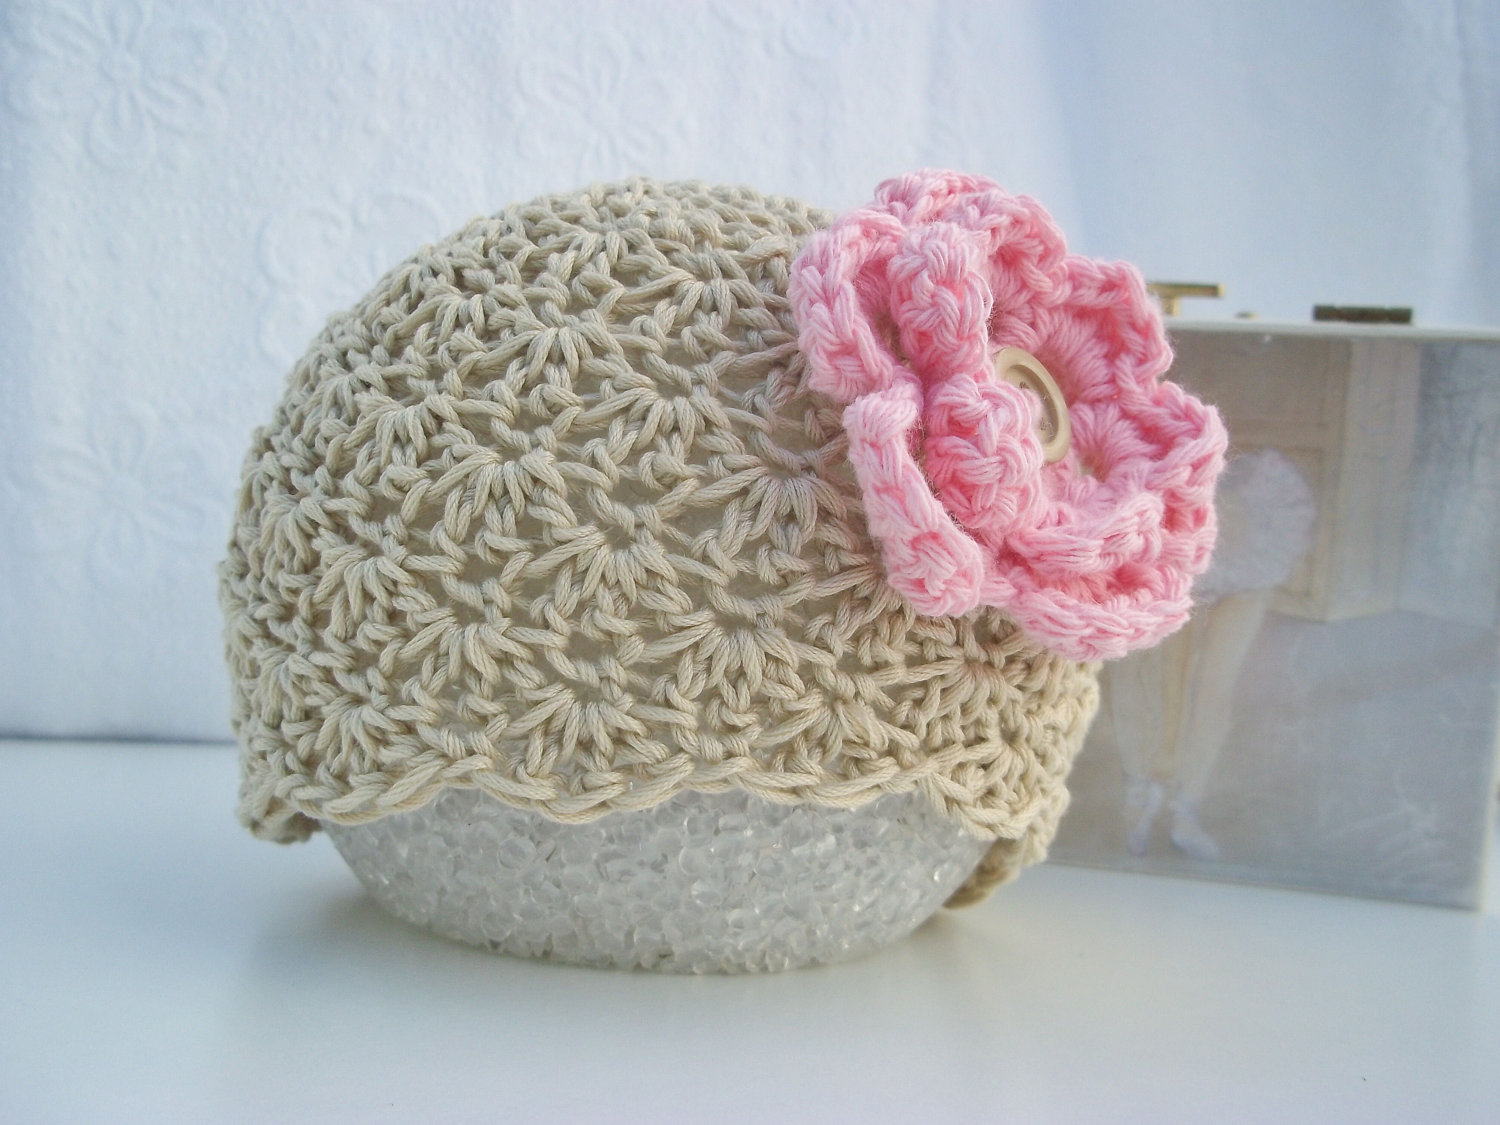 Crochet Patterns Of Baby Hats : Crochet baby hat Baby girl hat Newborn baby hat Beige Tan ...